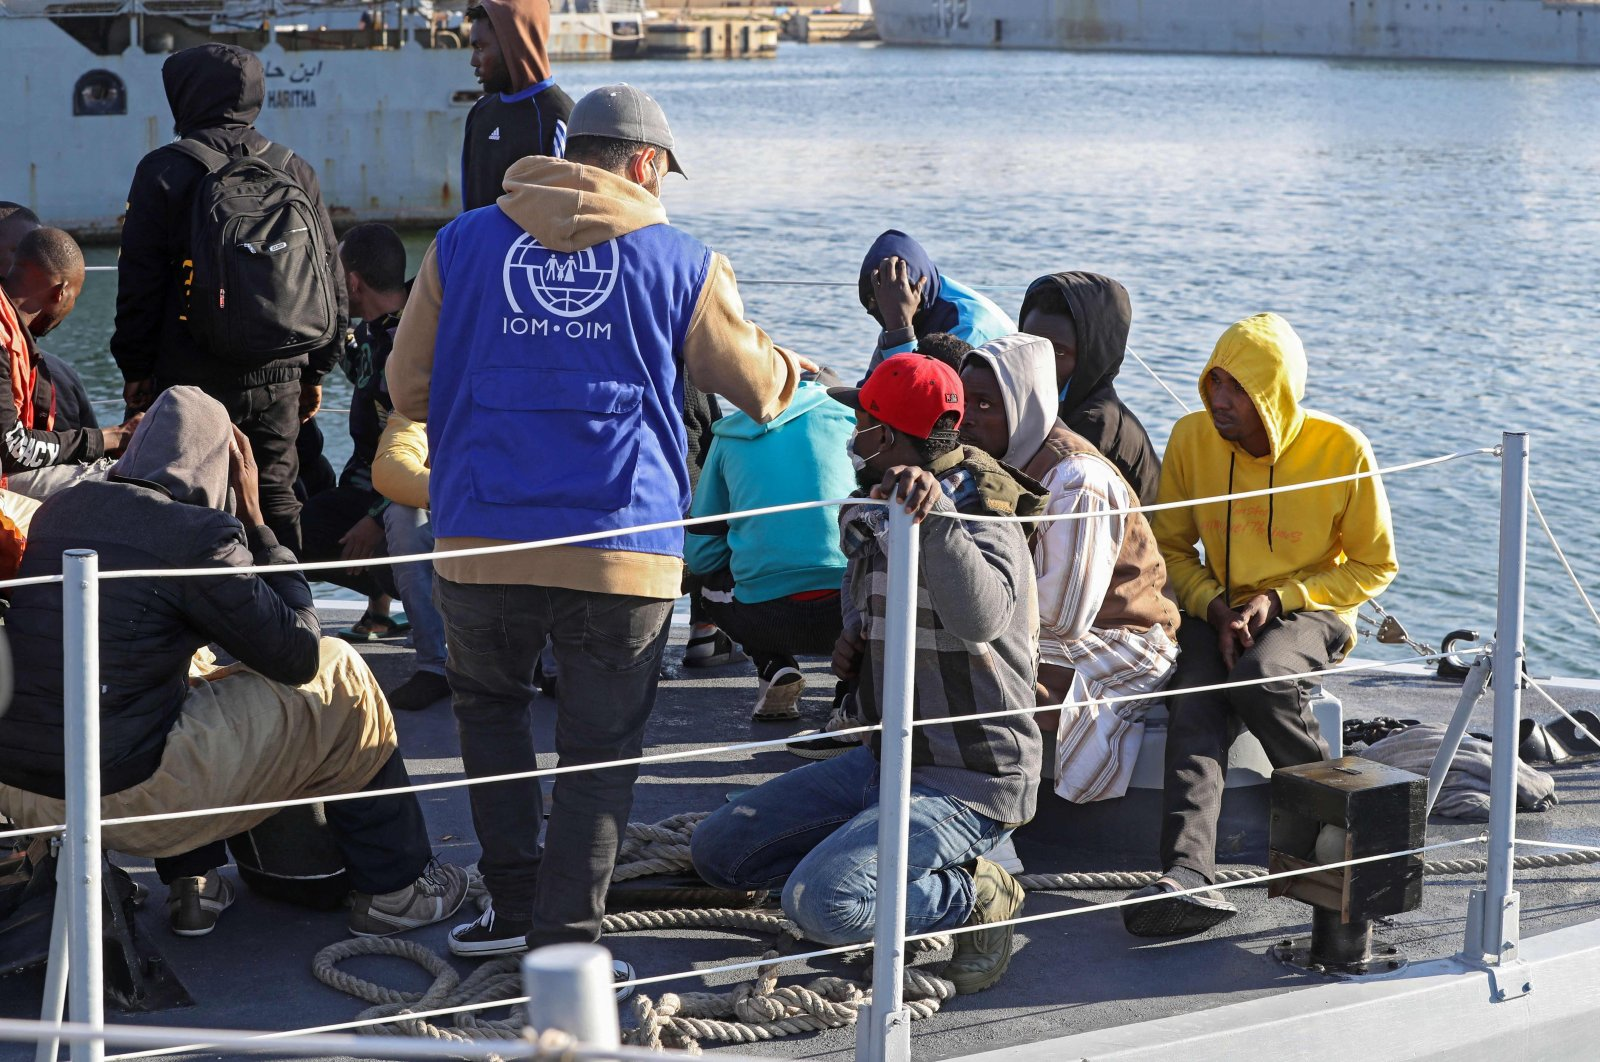 Migrants arrive at a naval base in the Libyan capital of Tripoli after the coastguard intercepted an inflatable boat carrying 138 Europe-bound migrants off its west coast, Tripoli, Libya, March 31, 2021. (AFP File Photo)